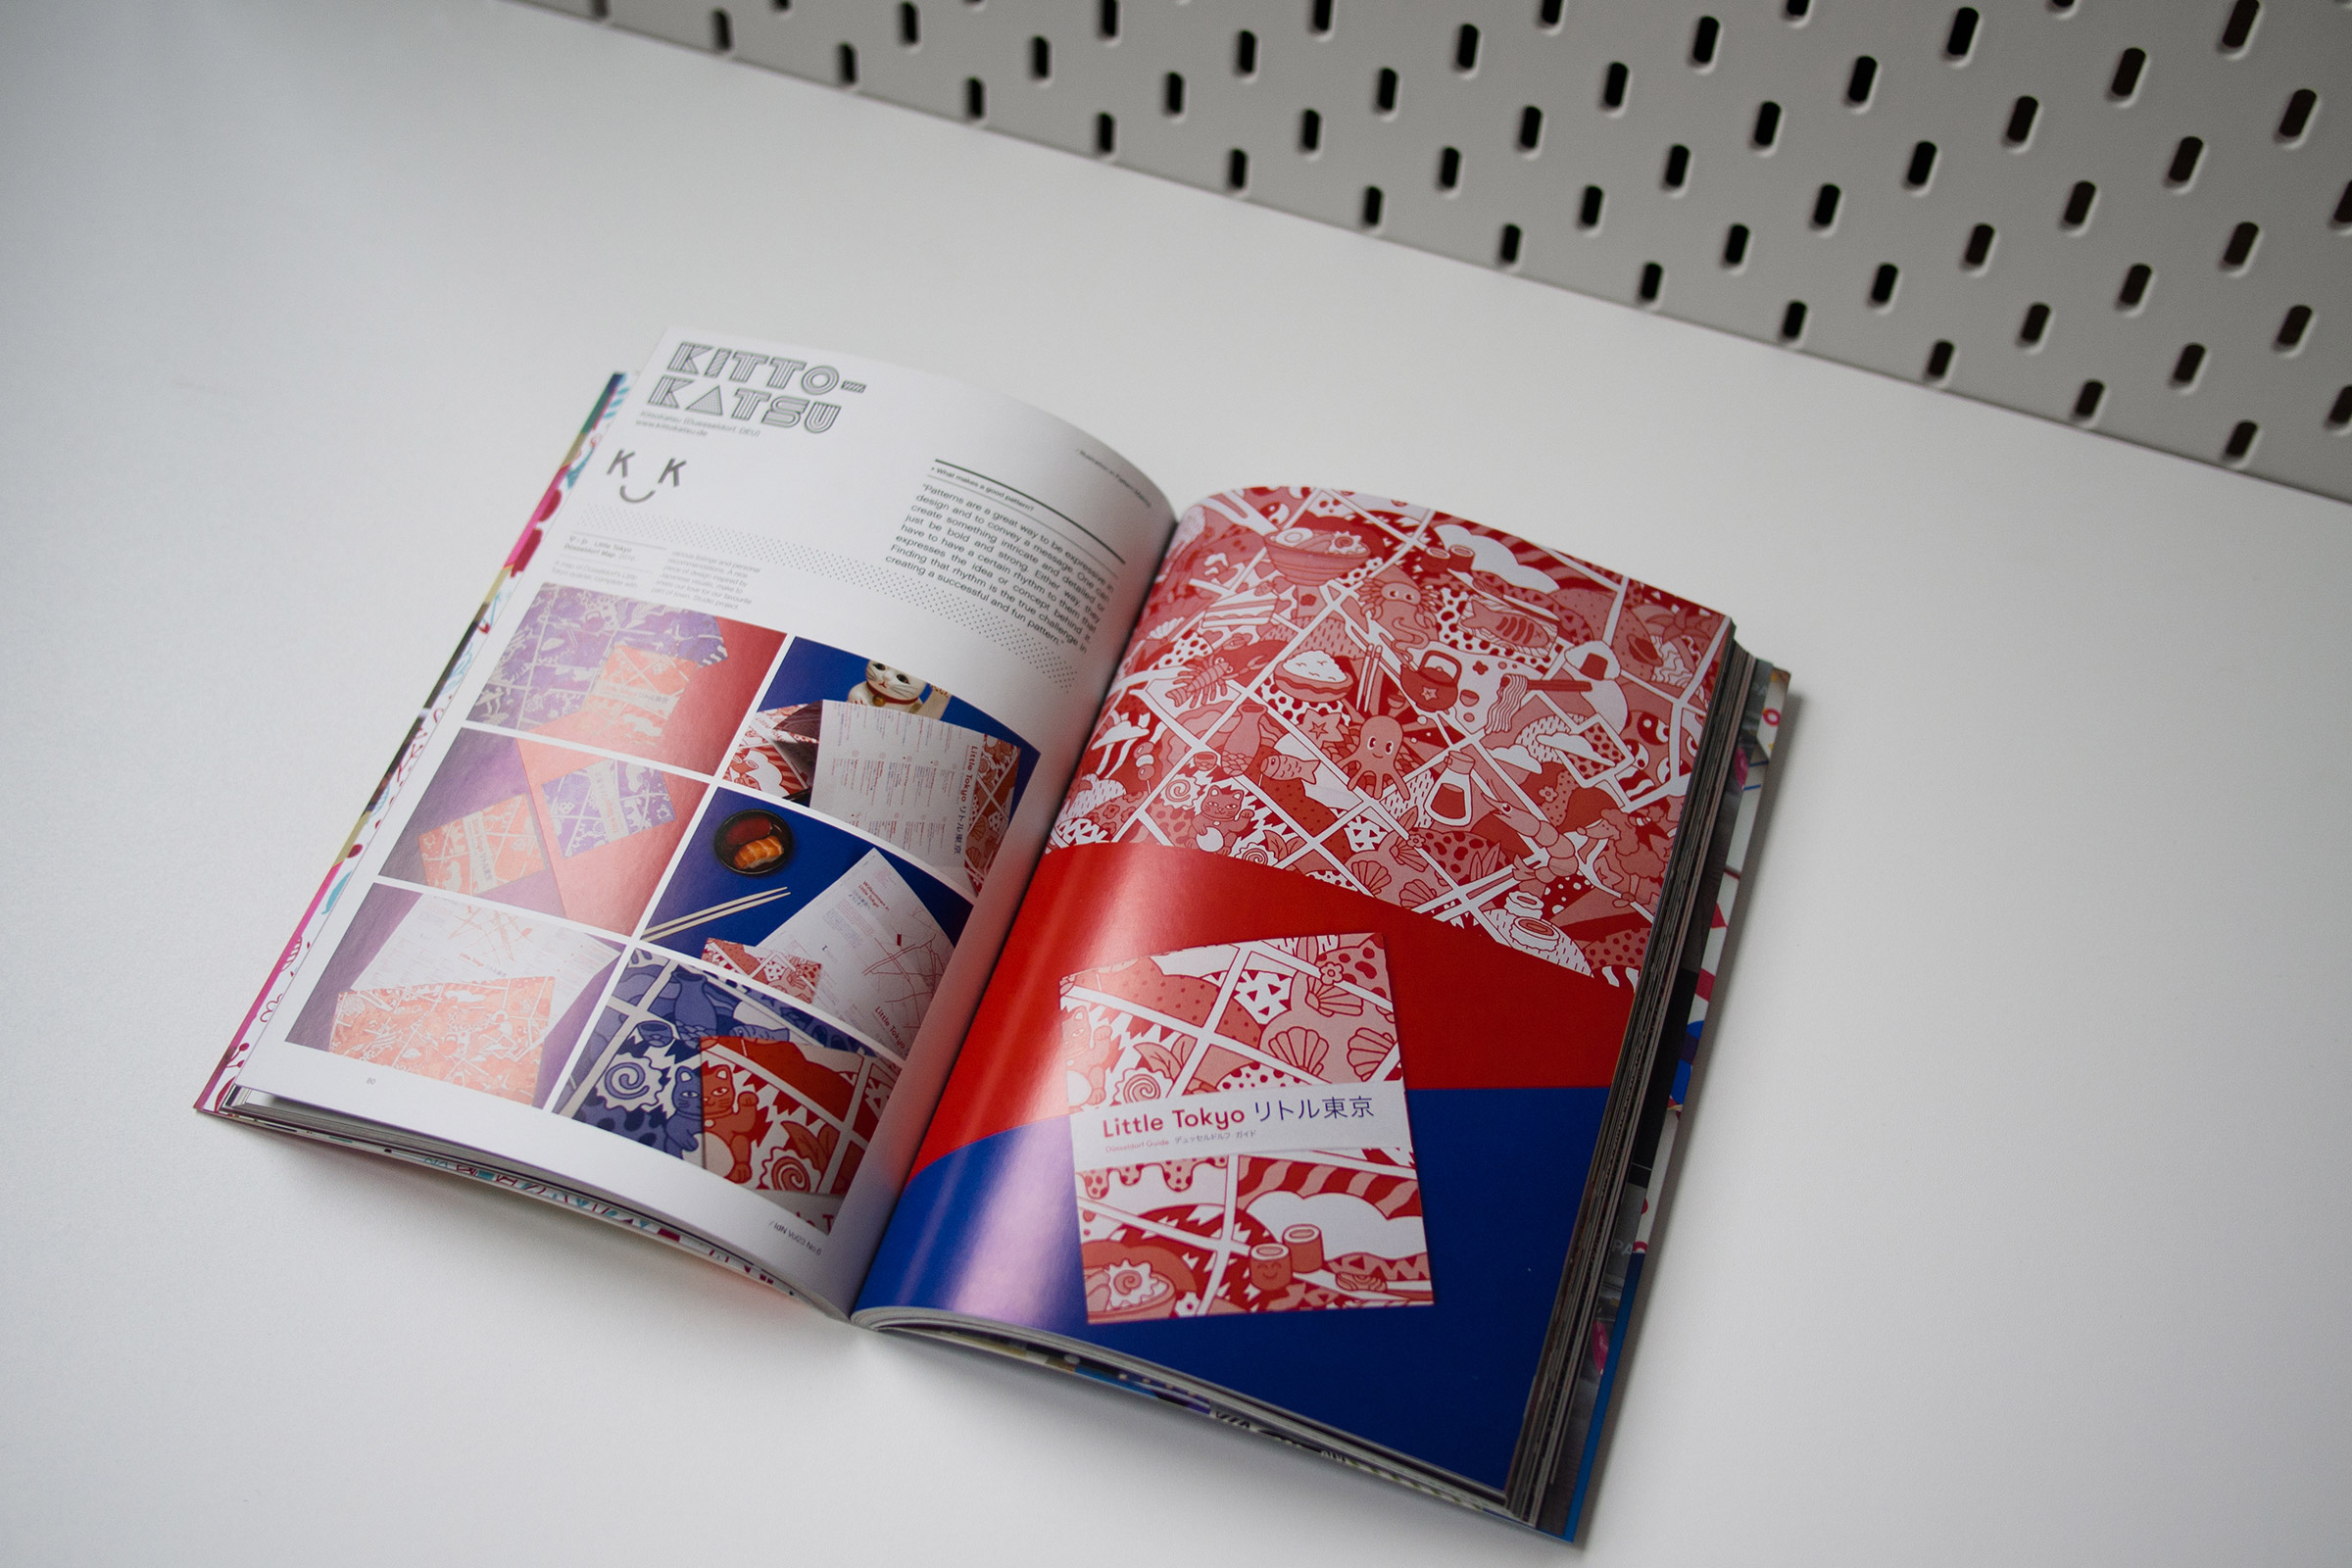 Presse, Publikation, Magazin, IdN Magazin, Pattern, Illustration, Little Tokyo